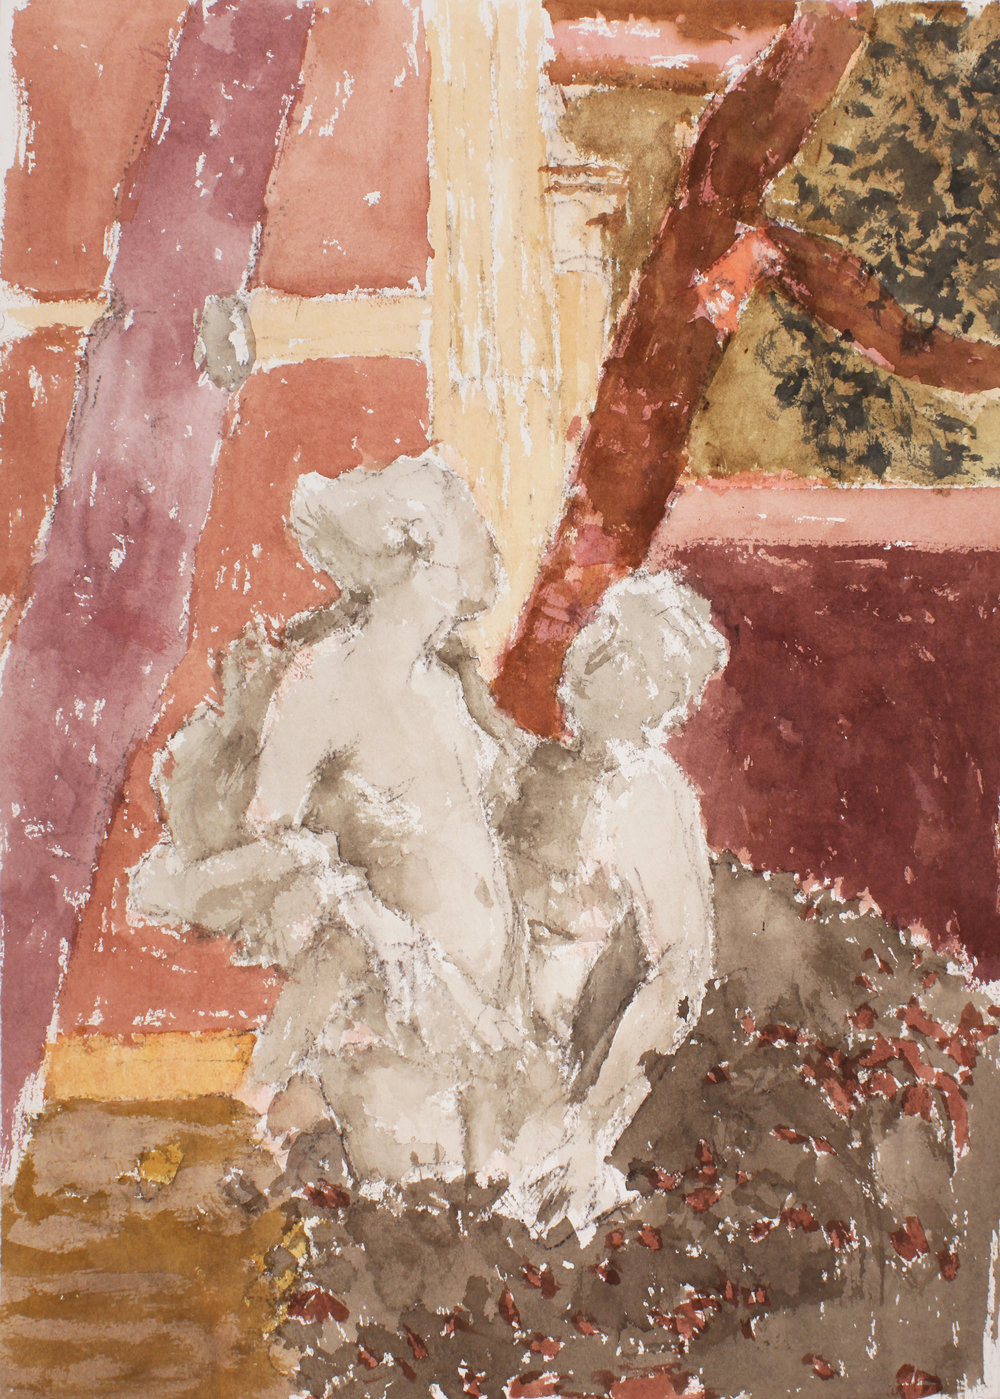 1997_Sculptures_in_Garden_Venice_watercolour_and_pencil_on_paper_21x15in_WPF373.jpg